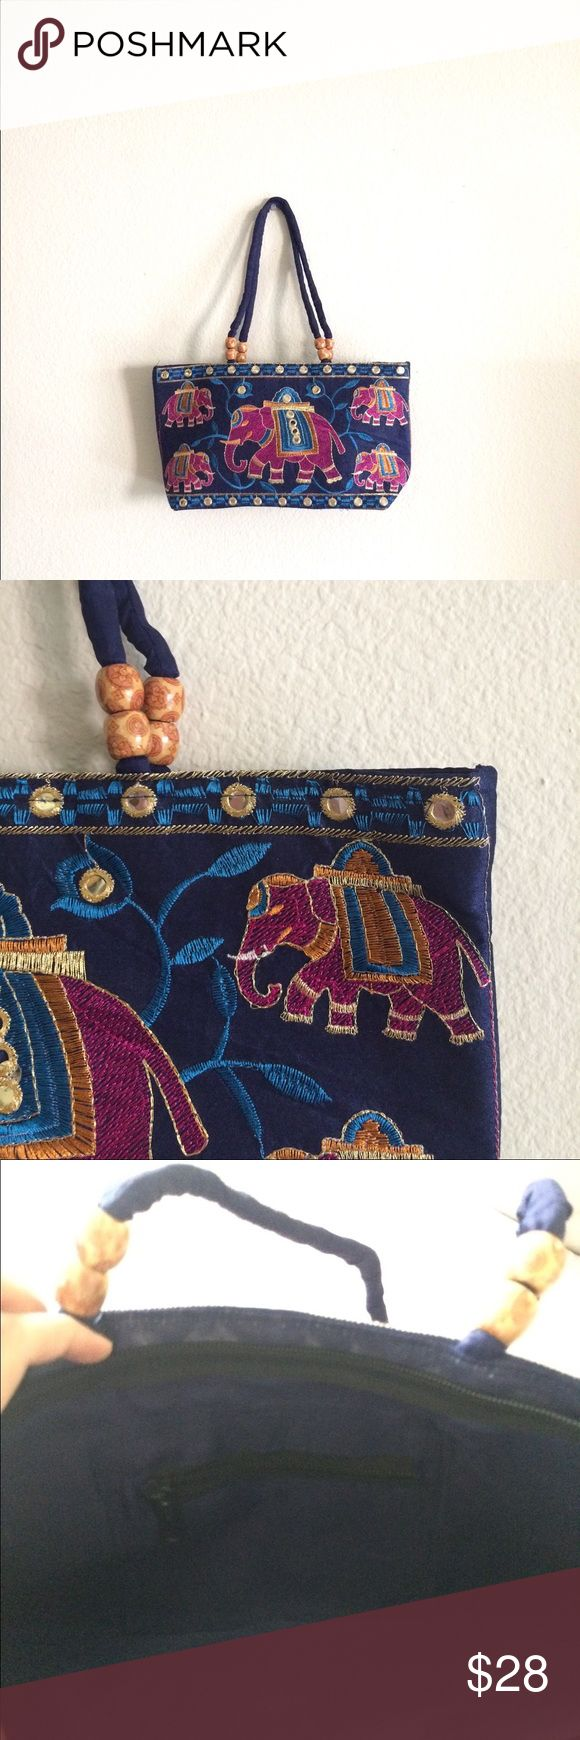 Handmade, embroidered ethnic handbag This little cloth handbag from India is handmade, beautifully embroidered, fully lined and adorned with sequin work on the body and wooden beads on the handles. The ethnic look is unmistakable. A beautiful melange of colors complement the look of this bag. The main closure is zippered (pic 3) and There is one zippered compartment on the inside of the bag as well (pic 4). Handmade Bags